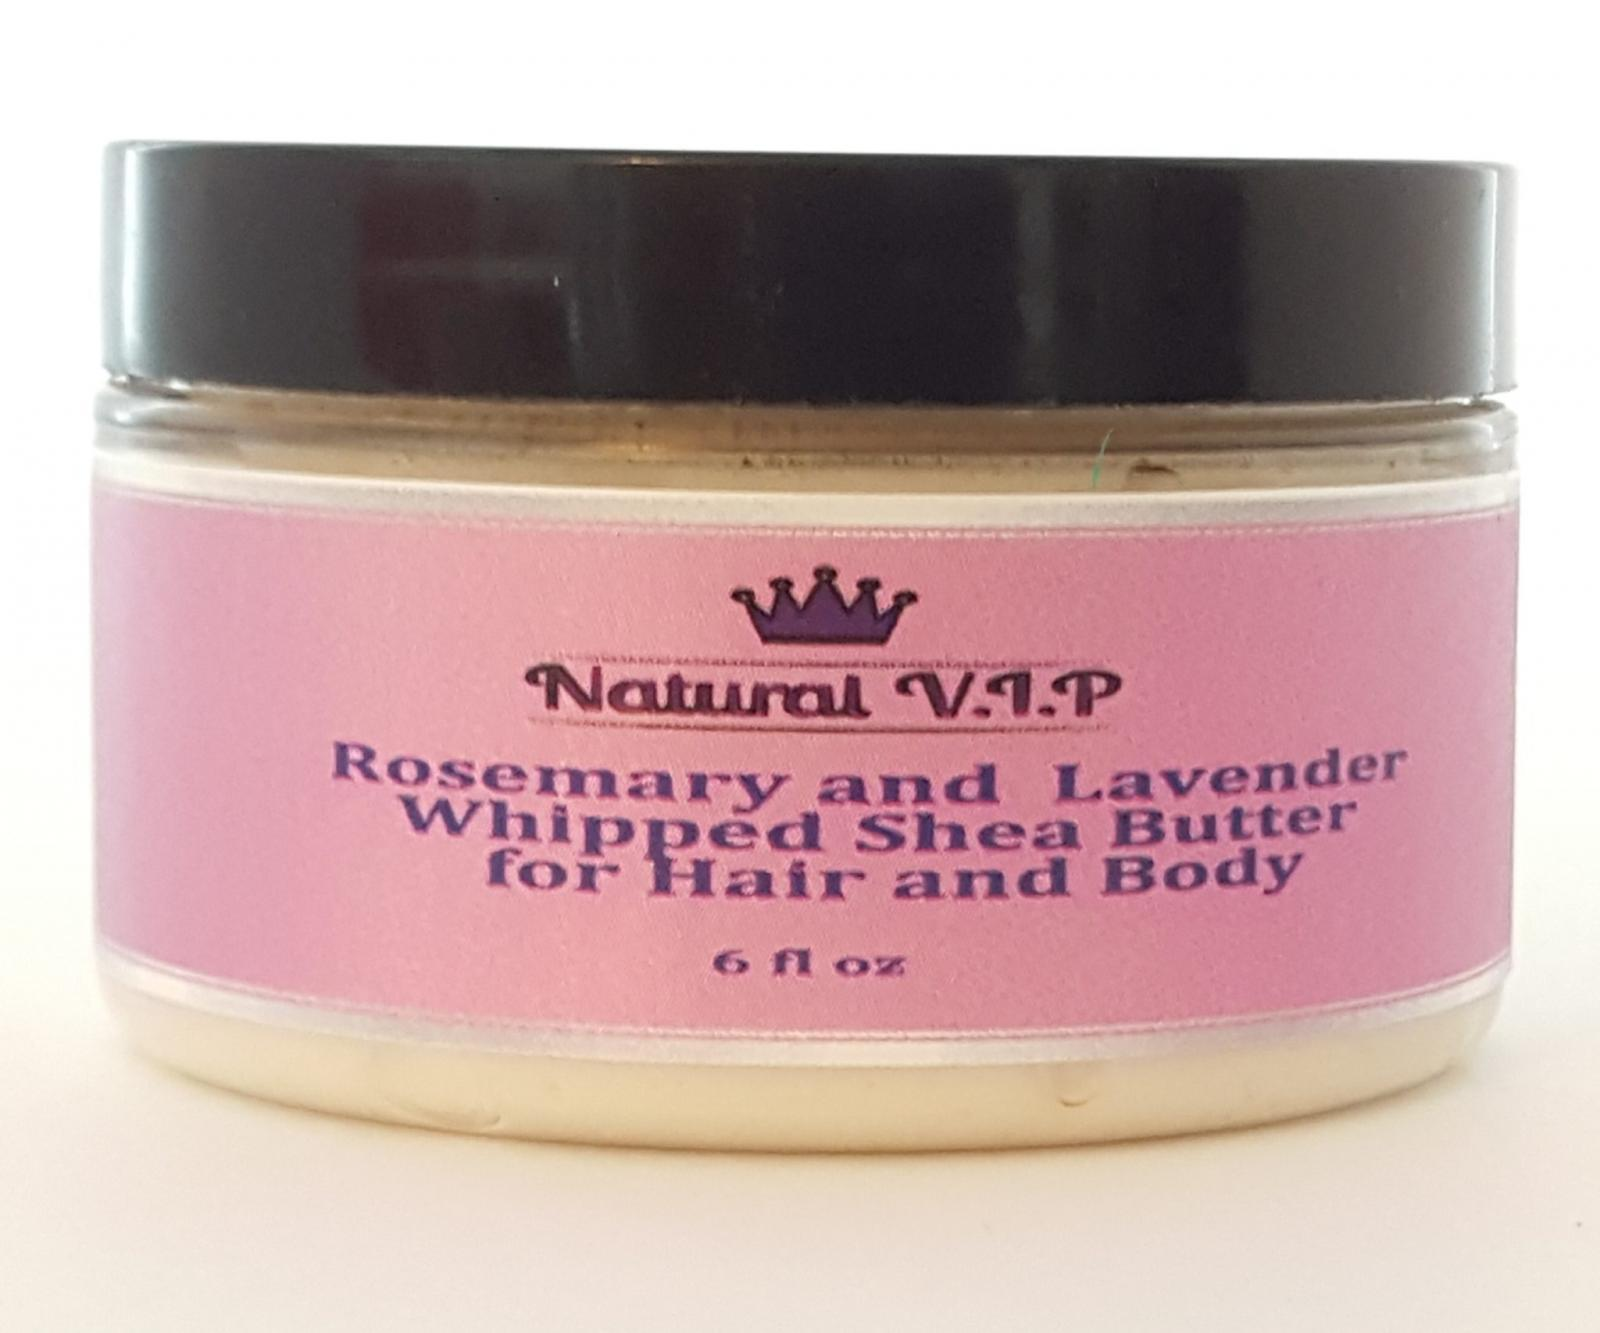 Rosemary and Lavender Whipped Shea Butter for Hair and Body 8 oz